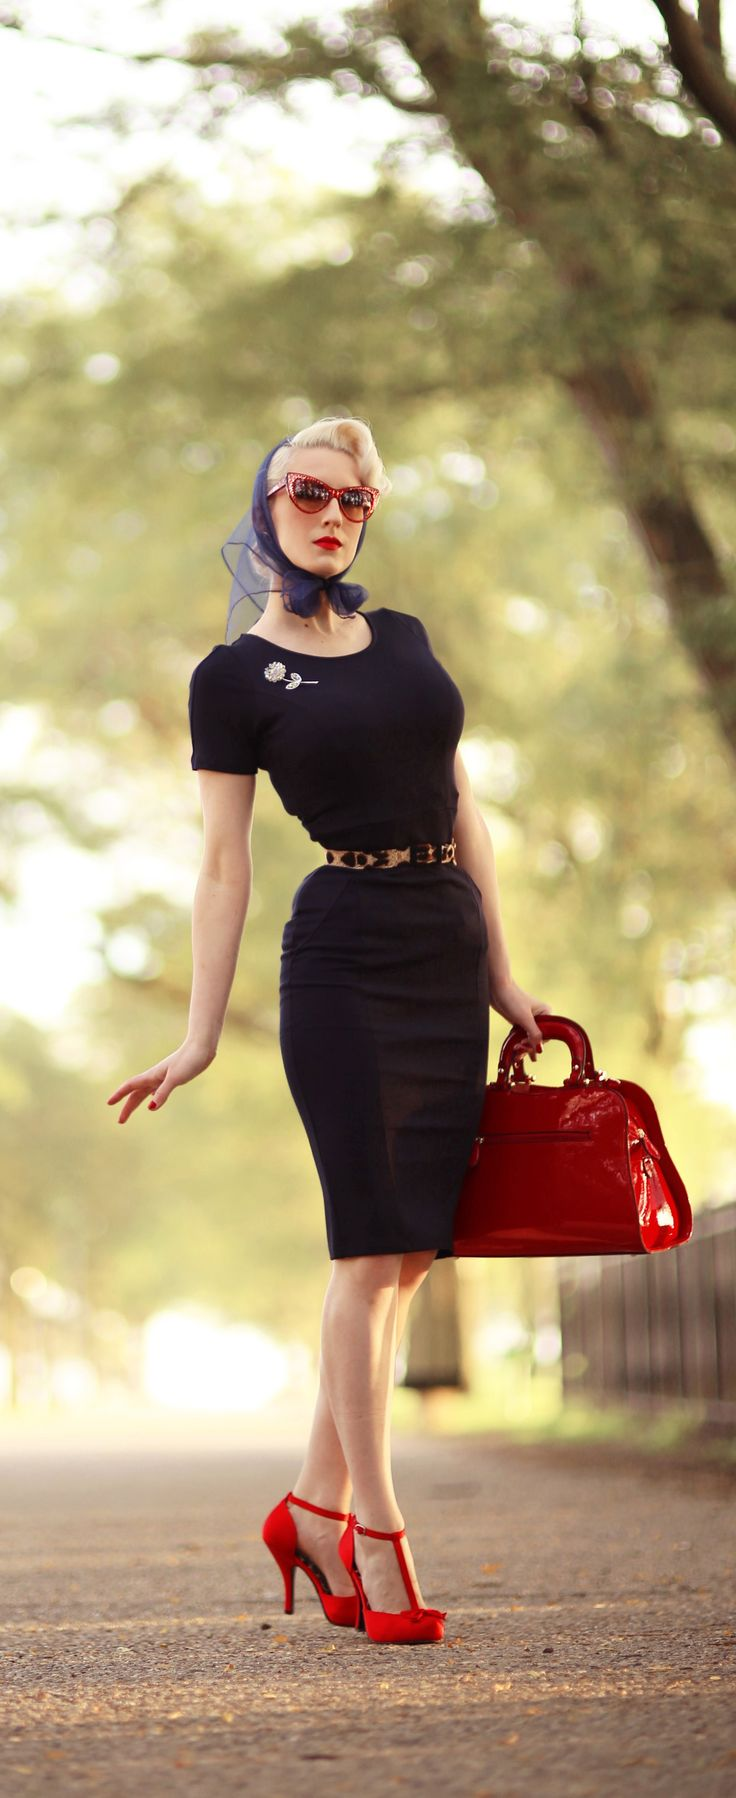 I love the red and black with those elegant yet fun shoes and the ultra glamorous headscarf/sunglasses pairing! x